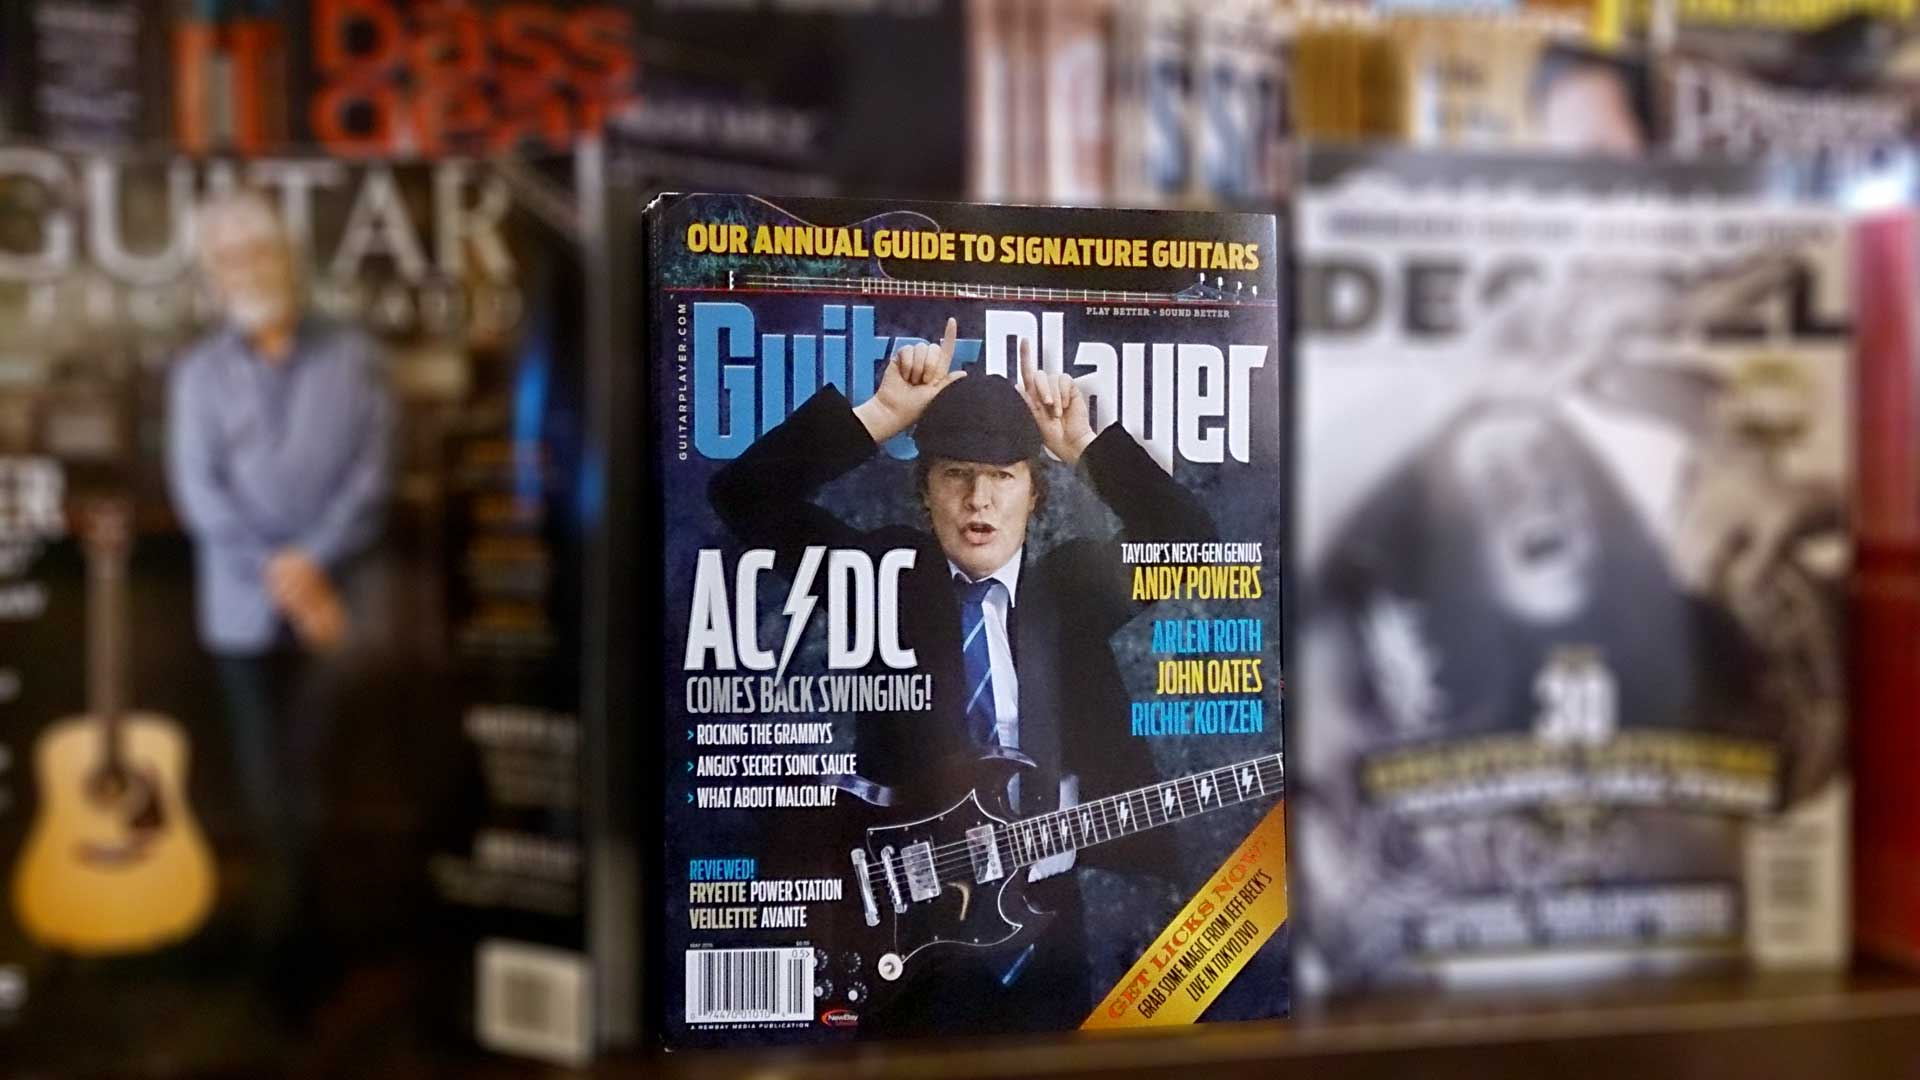 Guitar Player (May 2015) AC/DC Cover Story